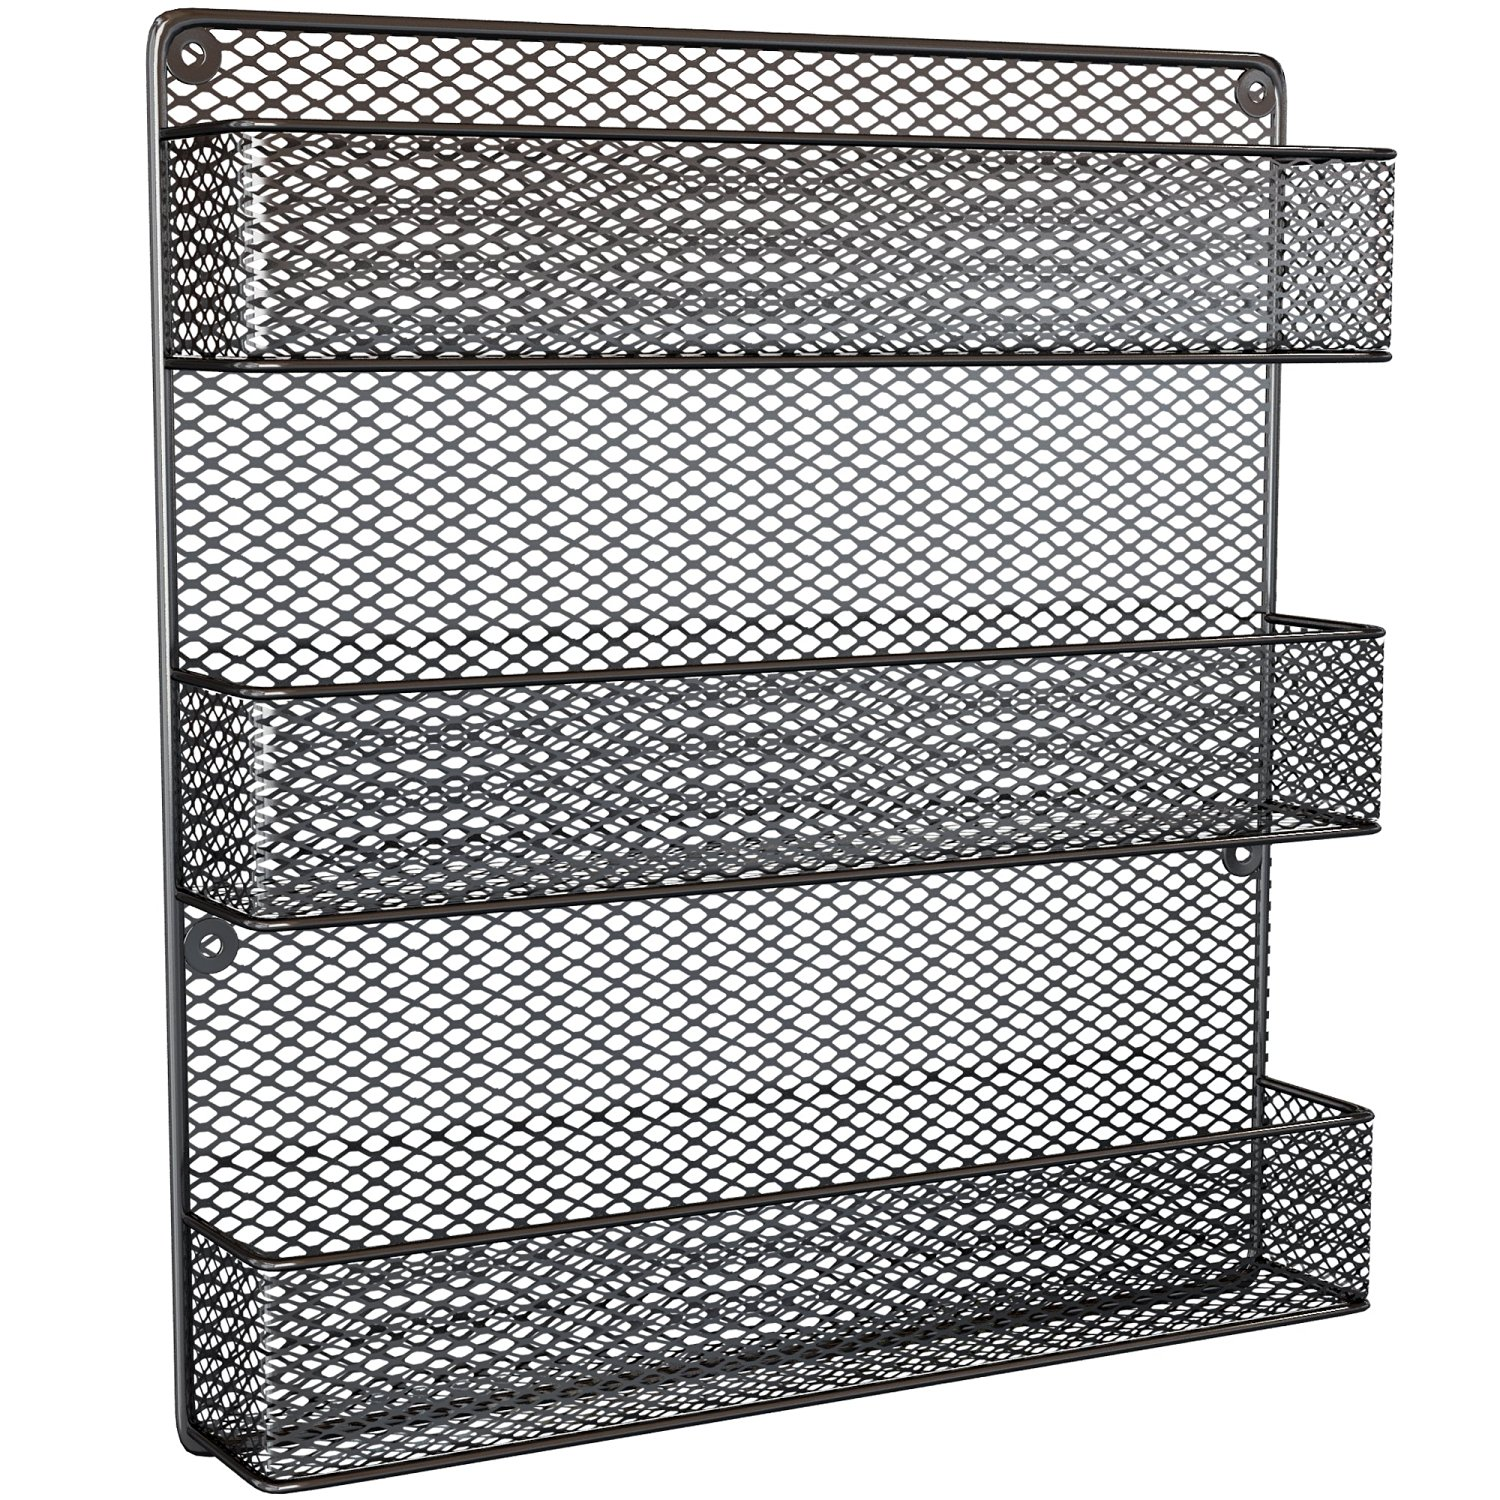 Spice Rack Organizer - Country Rustic Wire Style - Great Storage for Pantry, Cabinet and Kitchen - Wall Mounted 3 Tier Shelves